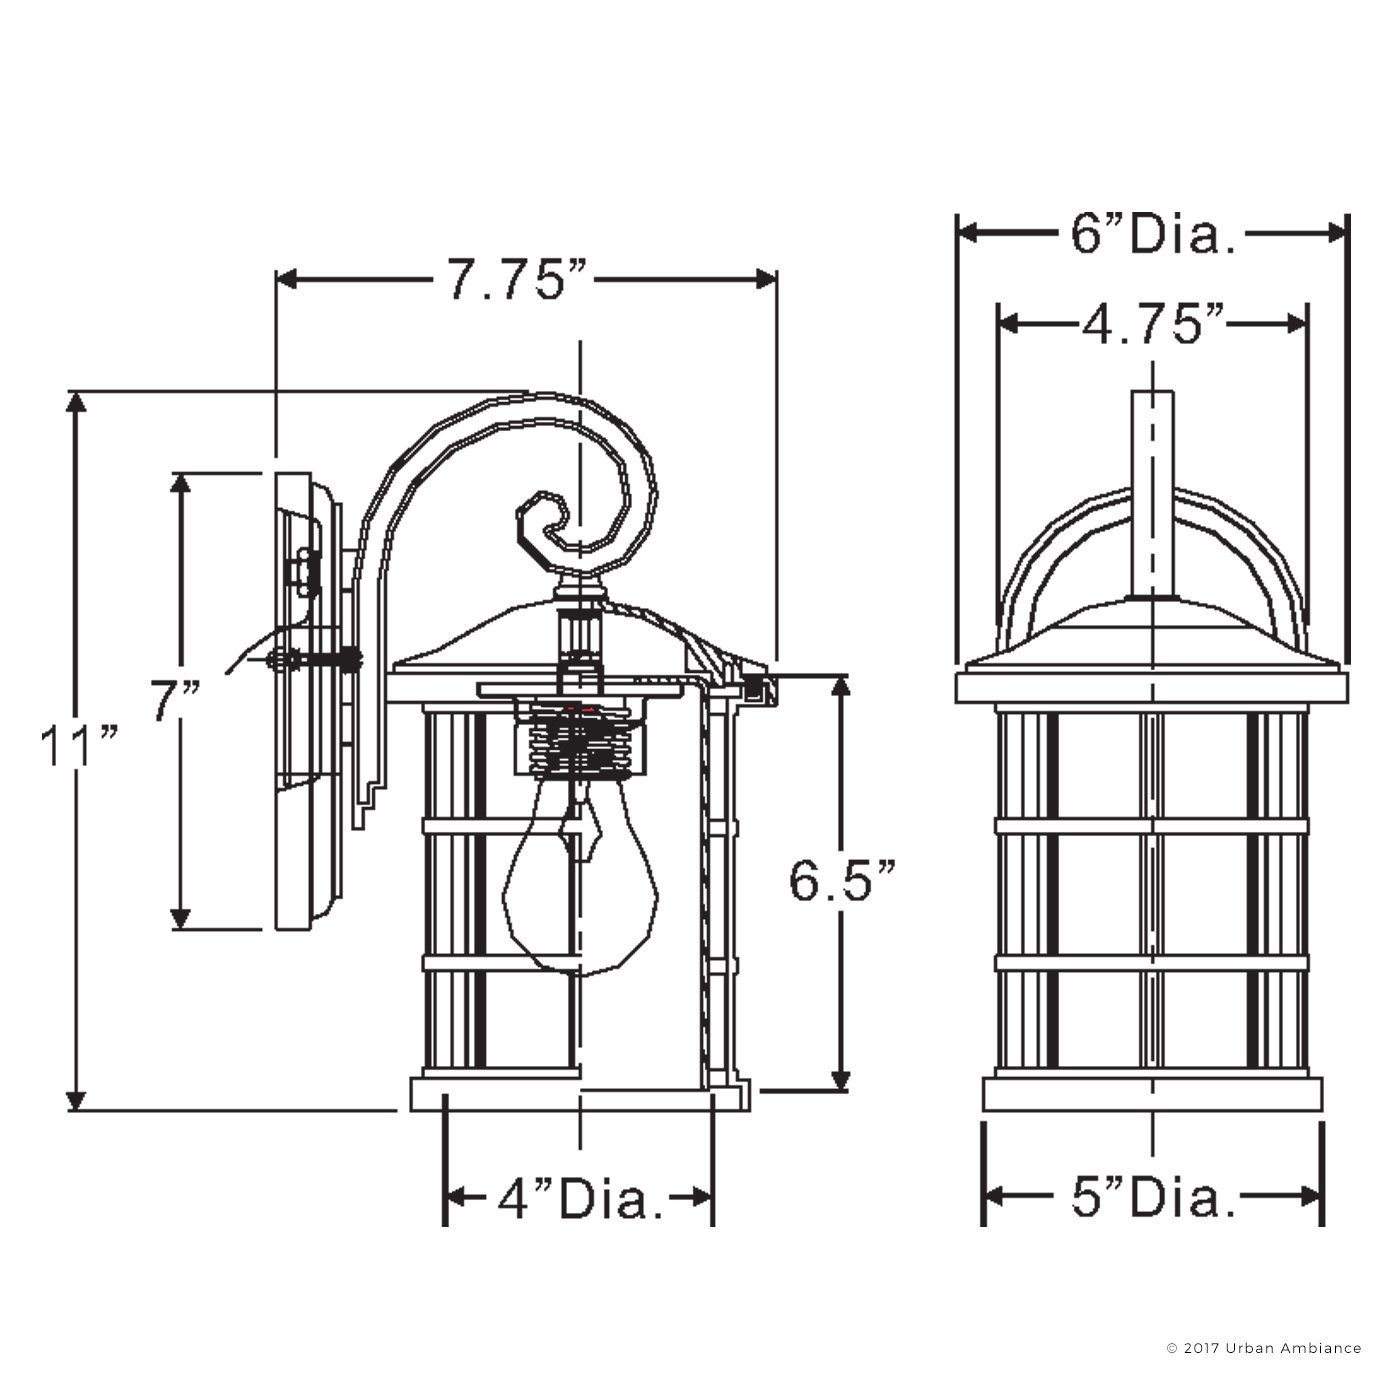 Luxury Craftsman Outdoor Wall Light, Small Size: 11'' H x 6'' W, with Tudor Style Elements, Wrought Iron Design, Oil Rubbed Parisian Bronze Finish and Seeded Glass, UQL1041 by Urban Ambiance by Urban Ambiance (Image #7)